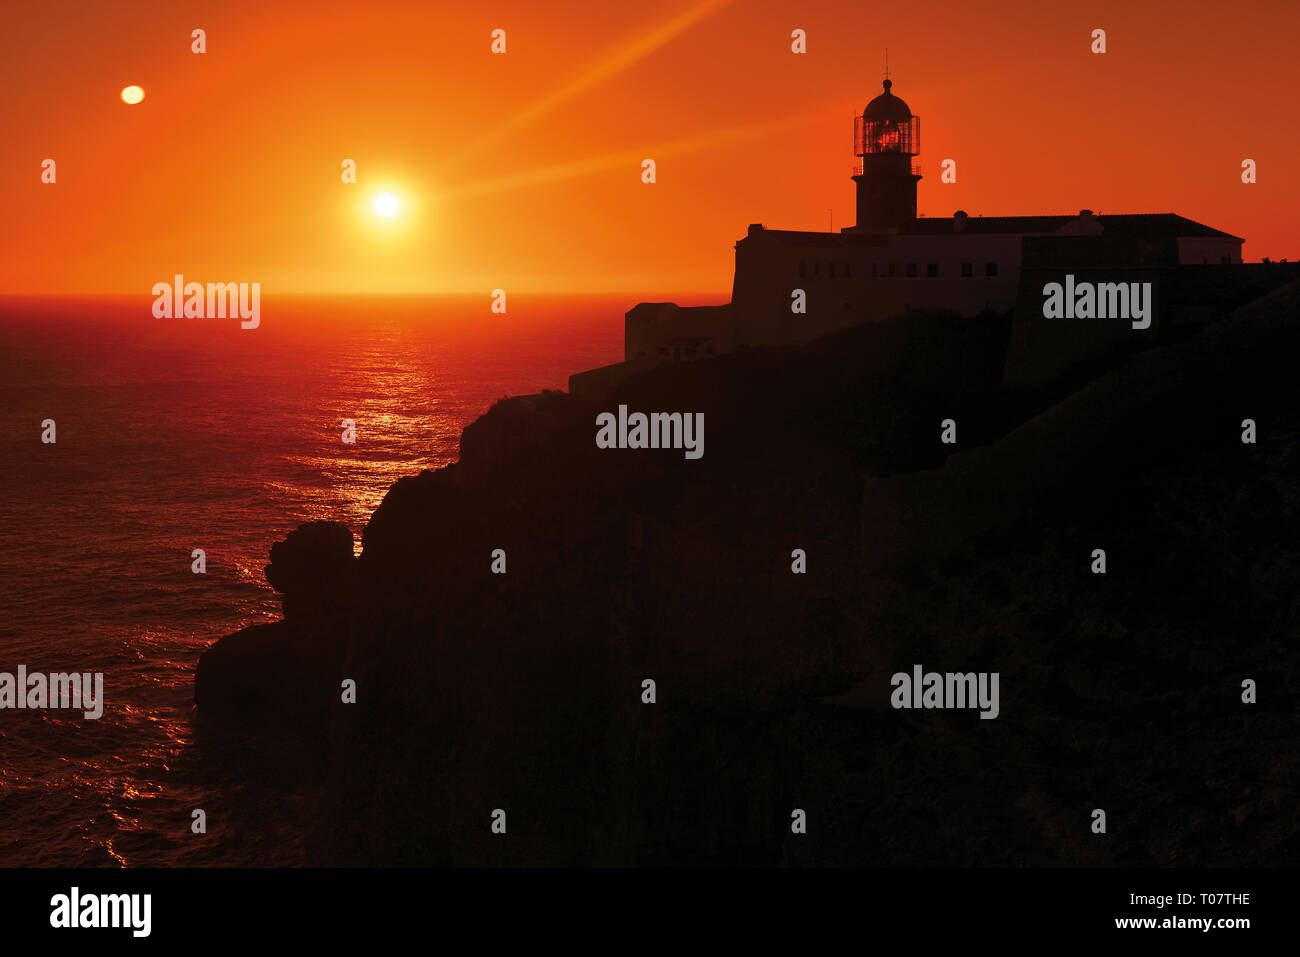 Romantic sunset at rocky coast with lighthouse Stock Photo